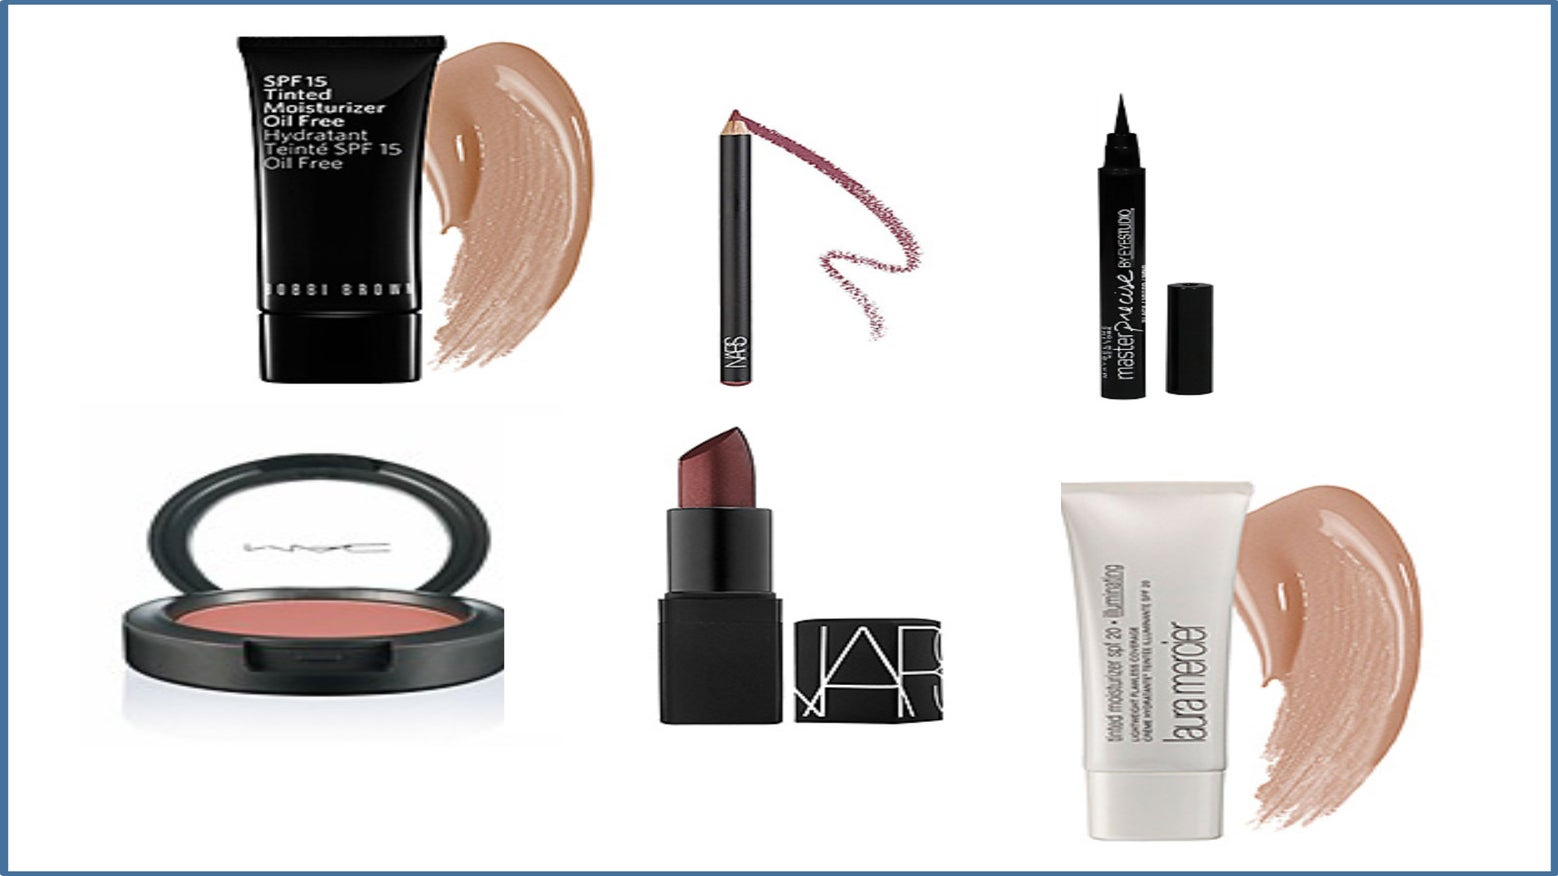 Chic Busy Mom: Mama Got a Fall Facelift